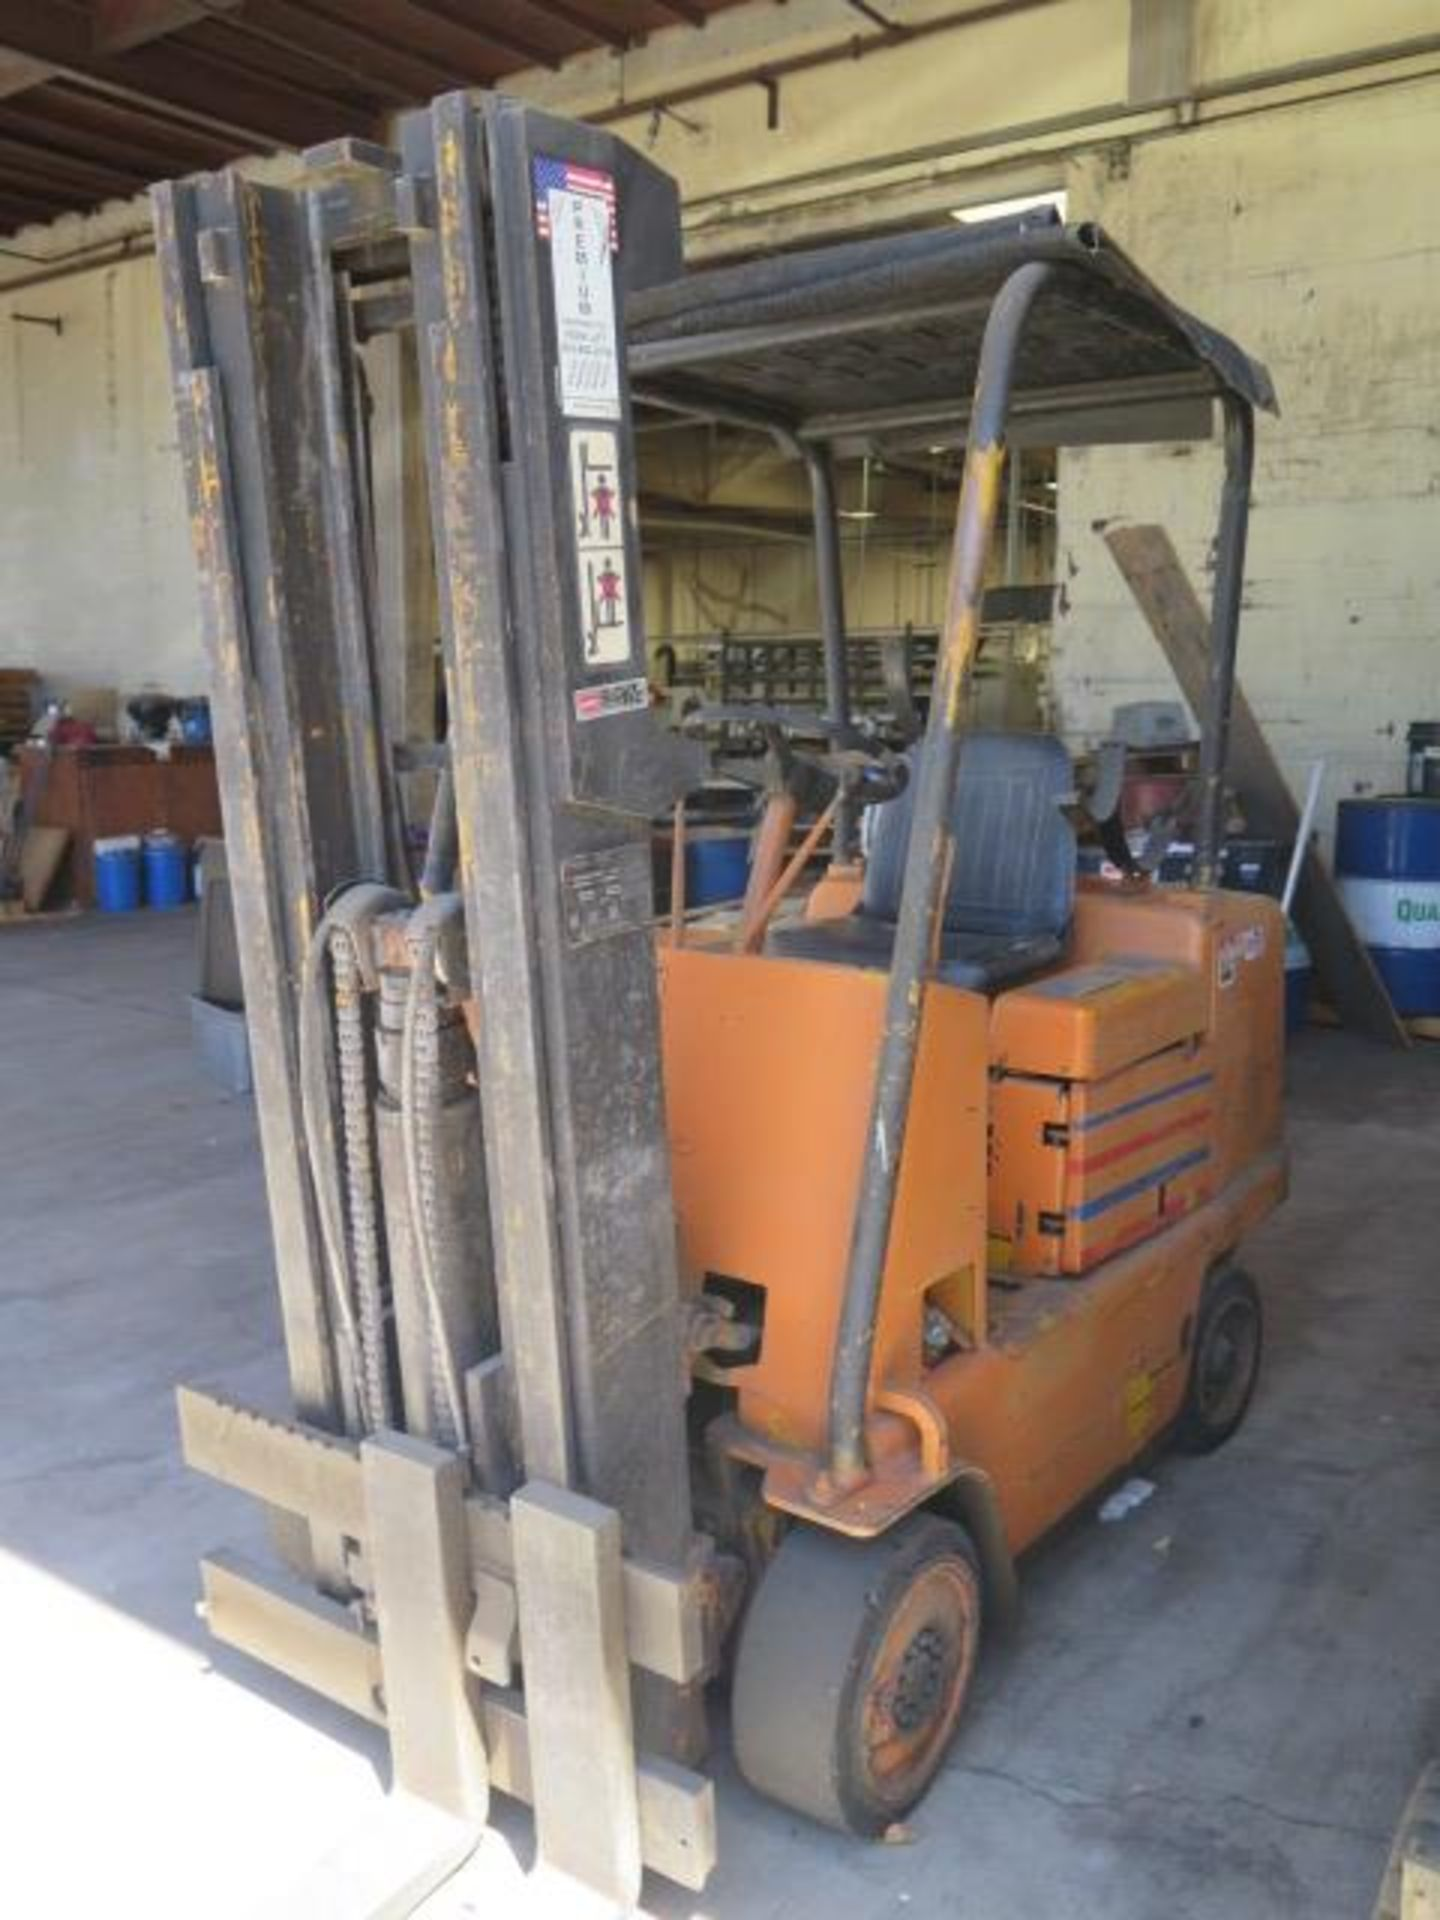 Caterpillar 4500 Lb Cap LPG Forklift s/n F235-83-2201172 (Condition Unknown) SOLD AS-IS - Image 3 of 13